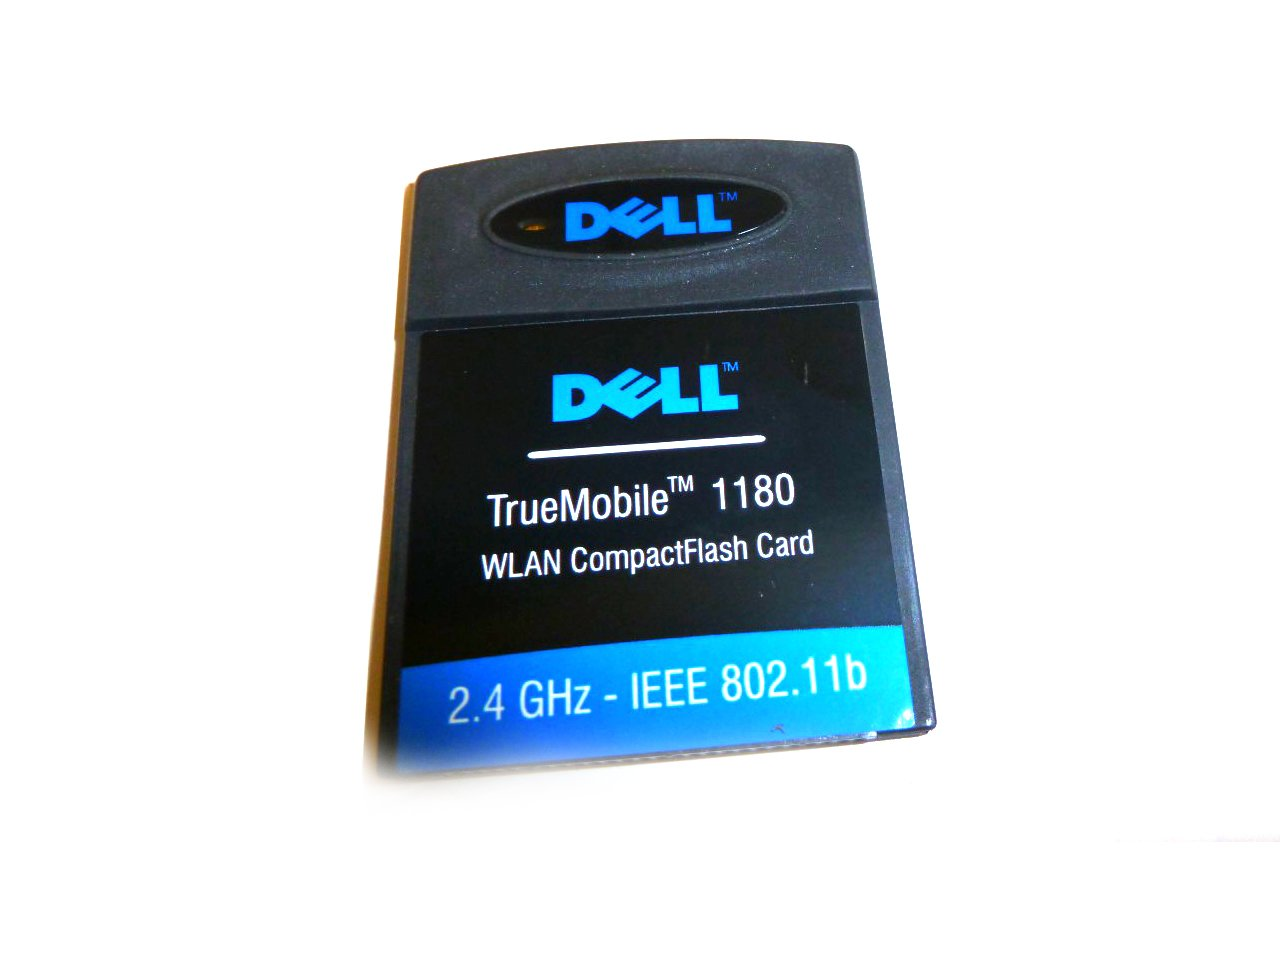 DELL TRUEMOBILE 1180 WIRELESS CF CARD DRIVERS FOR MAC